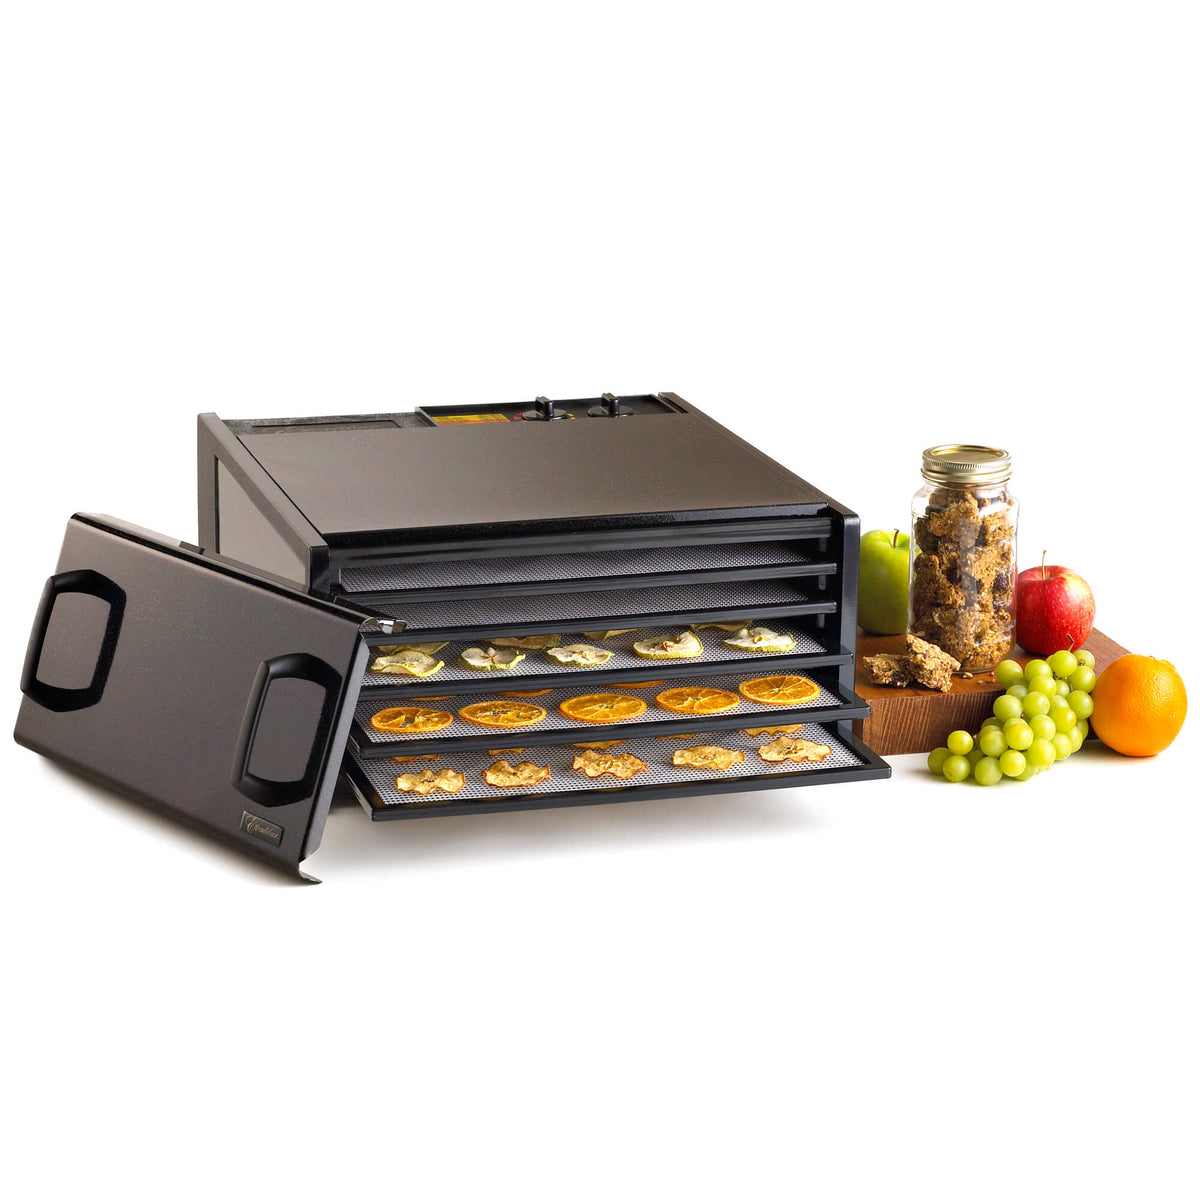 Excalibur D502TB Twilight Black 5 tray stainless steel dehydrator with door propped to the side and food on the trays.